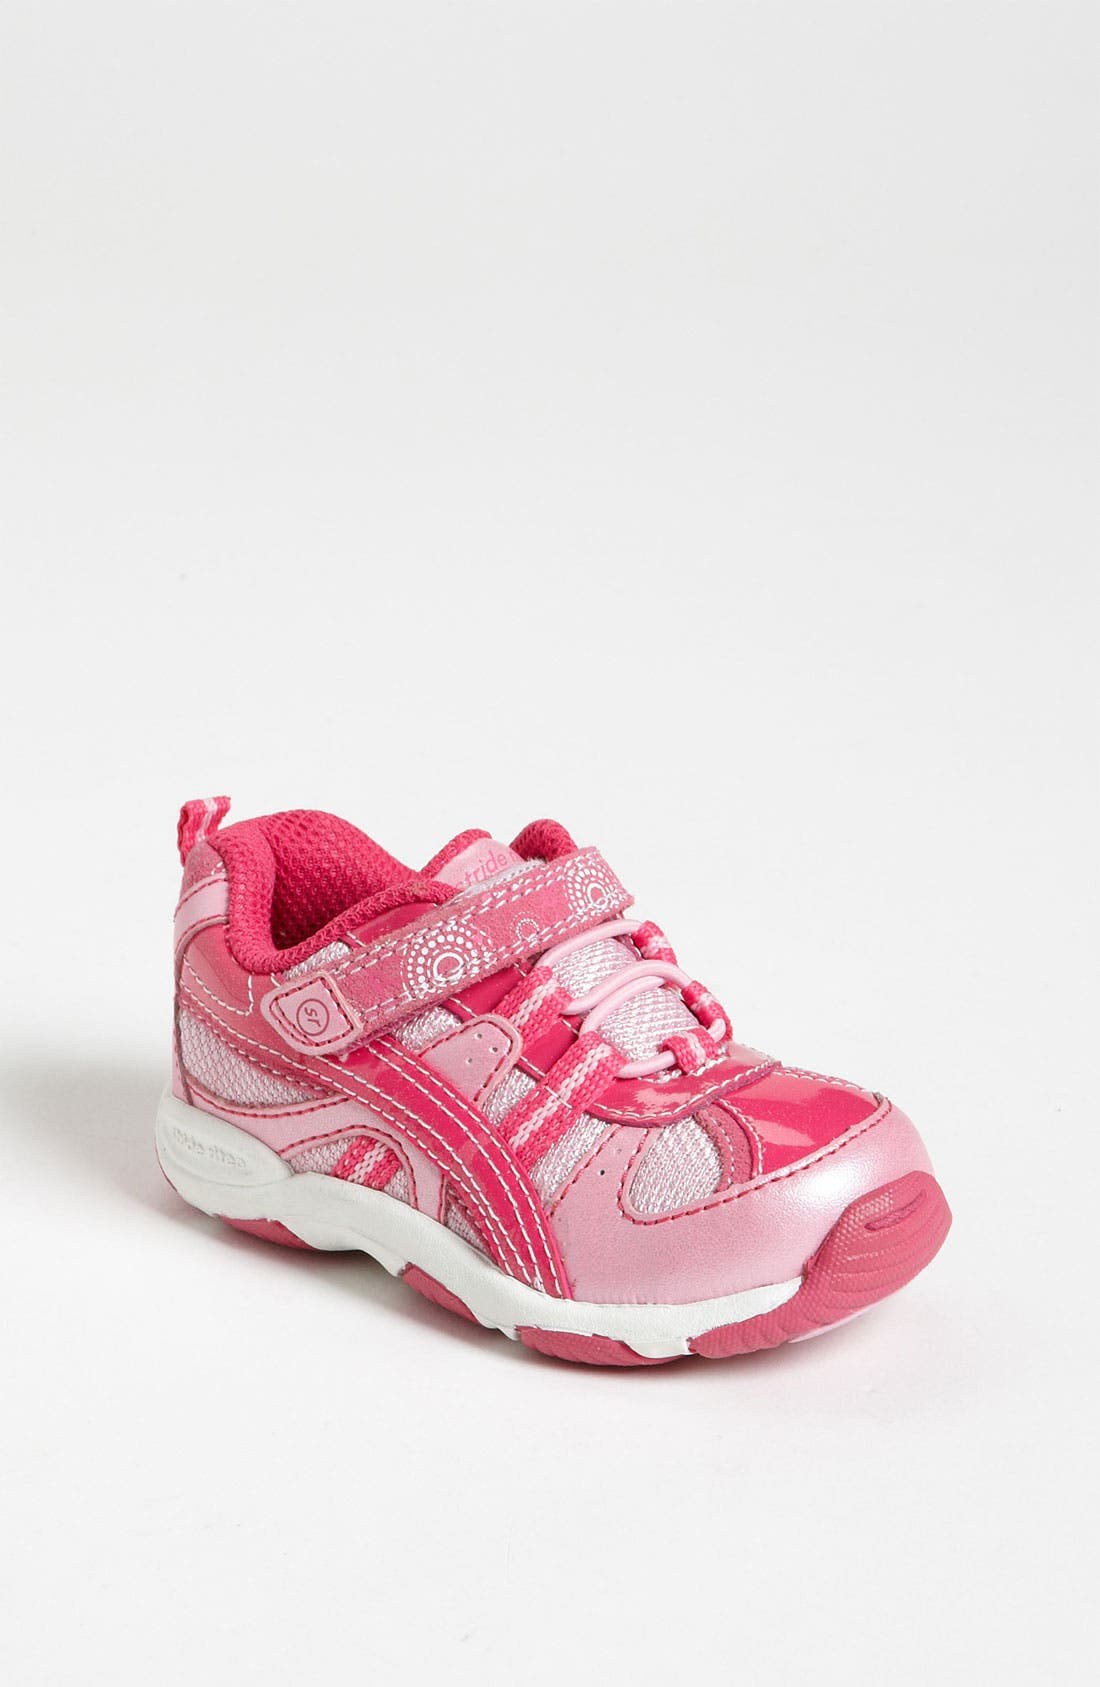 Main Image - Stride Rite 'Milli' Sneaker (Baby, Walker & Toddler)